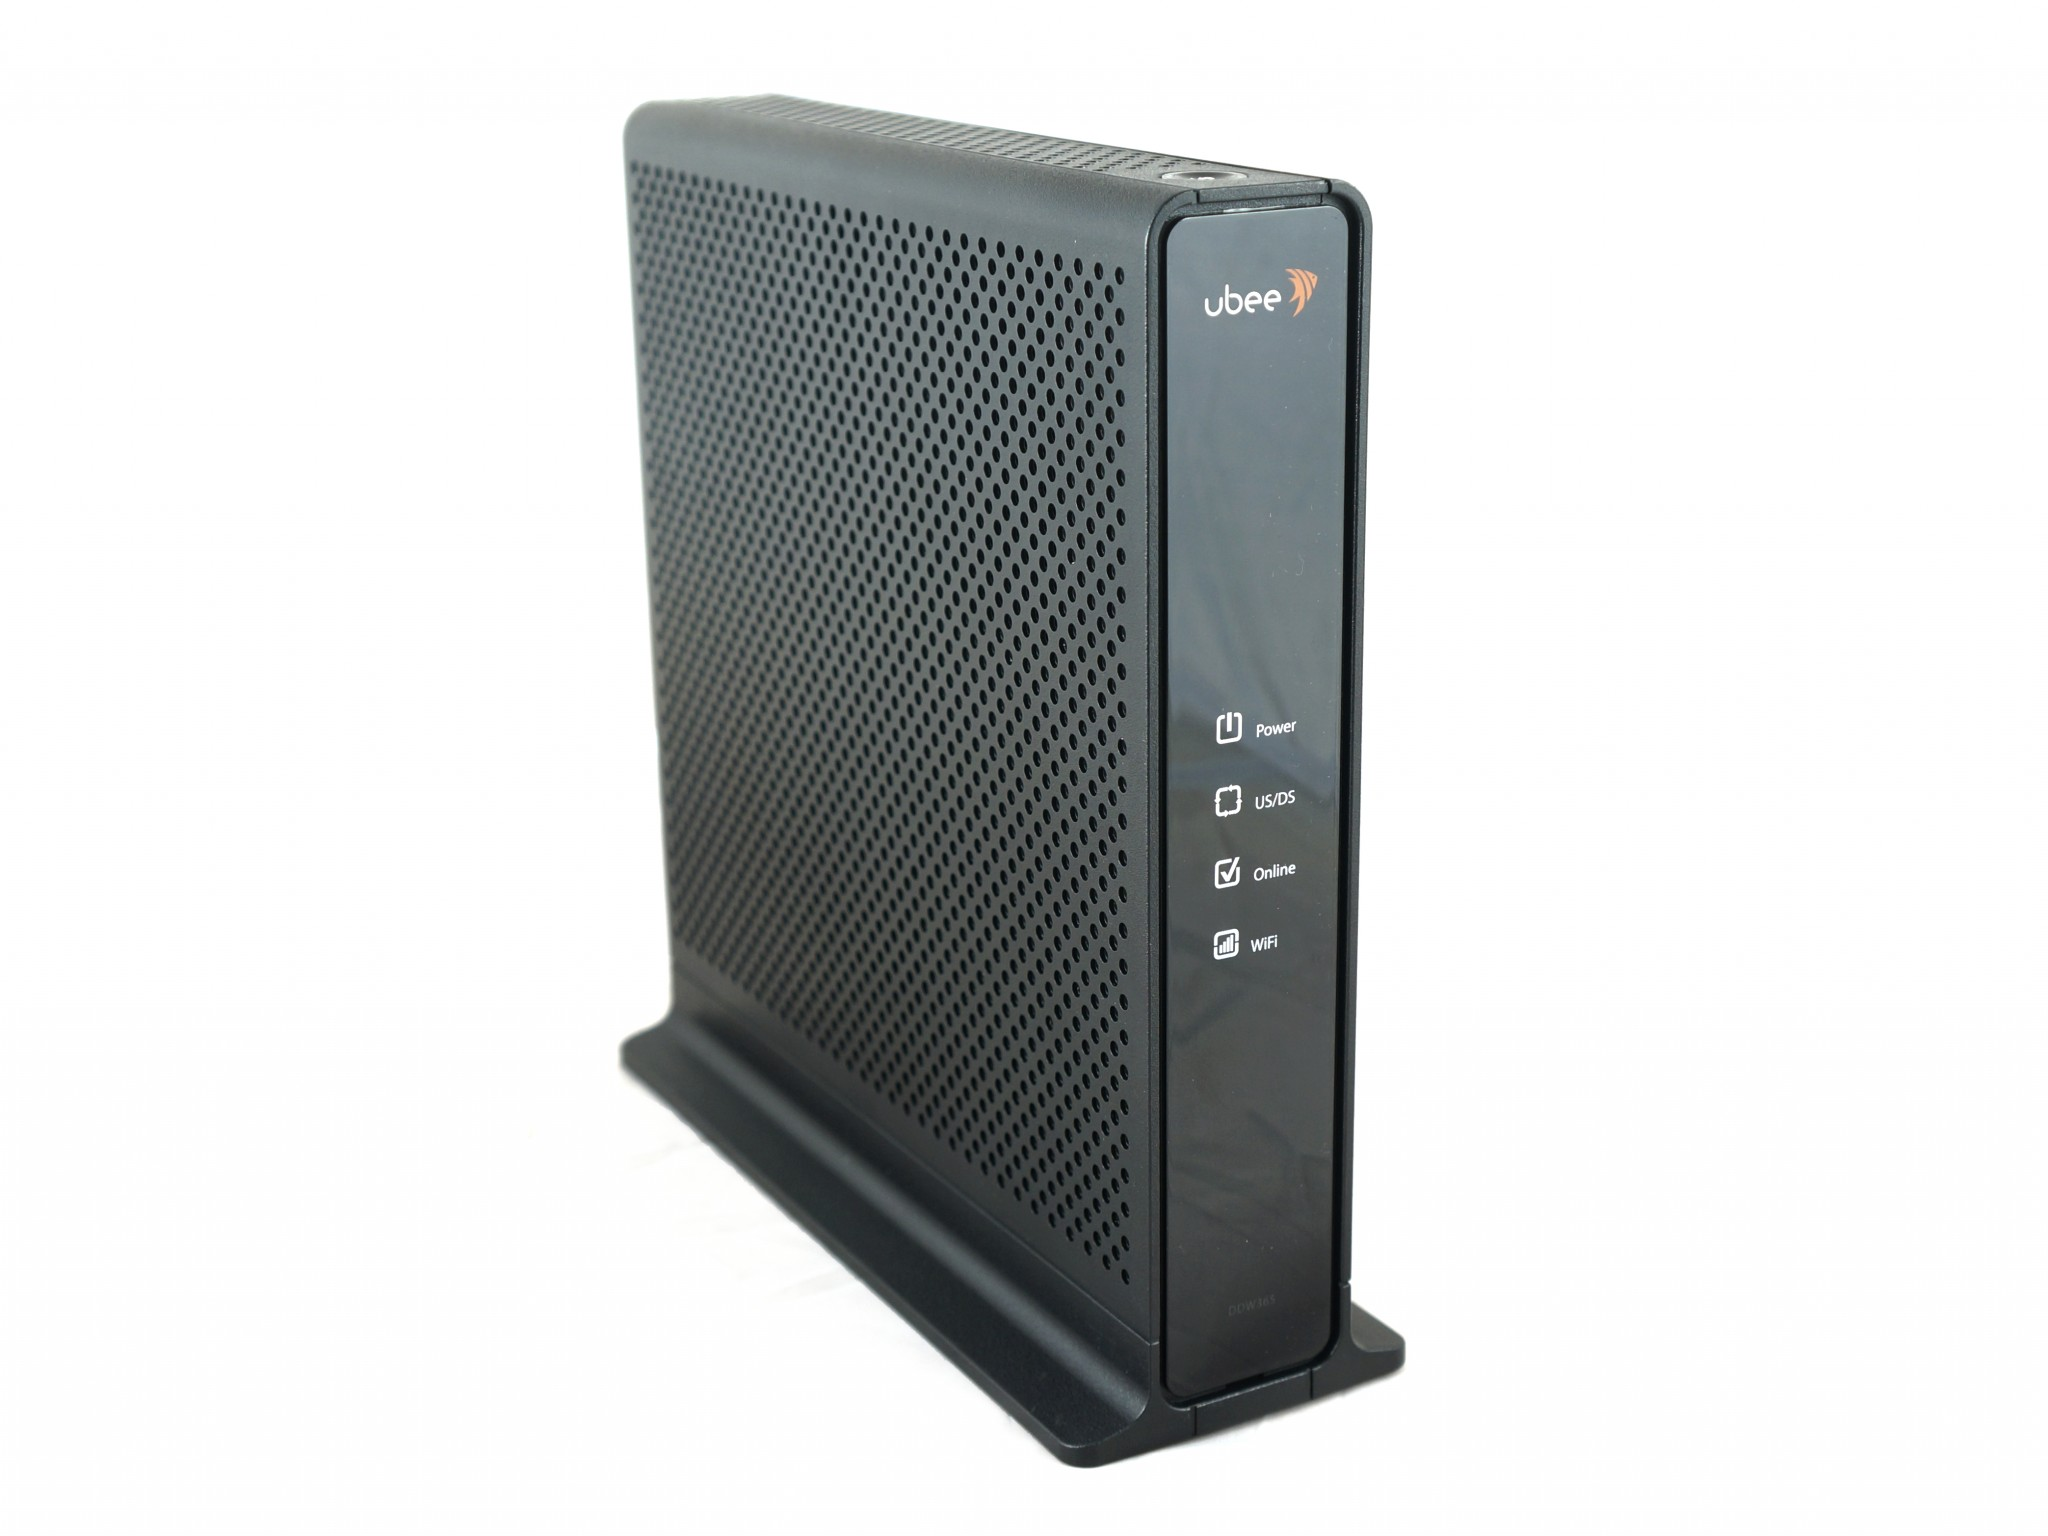 Ubee Ddw365 Wireless Cable Modem Gateway Modem